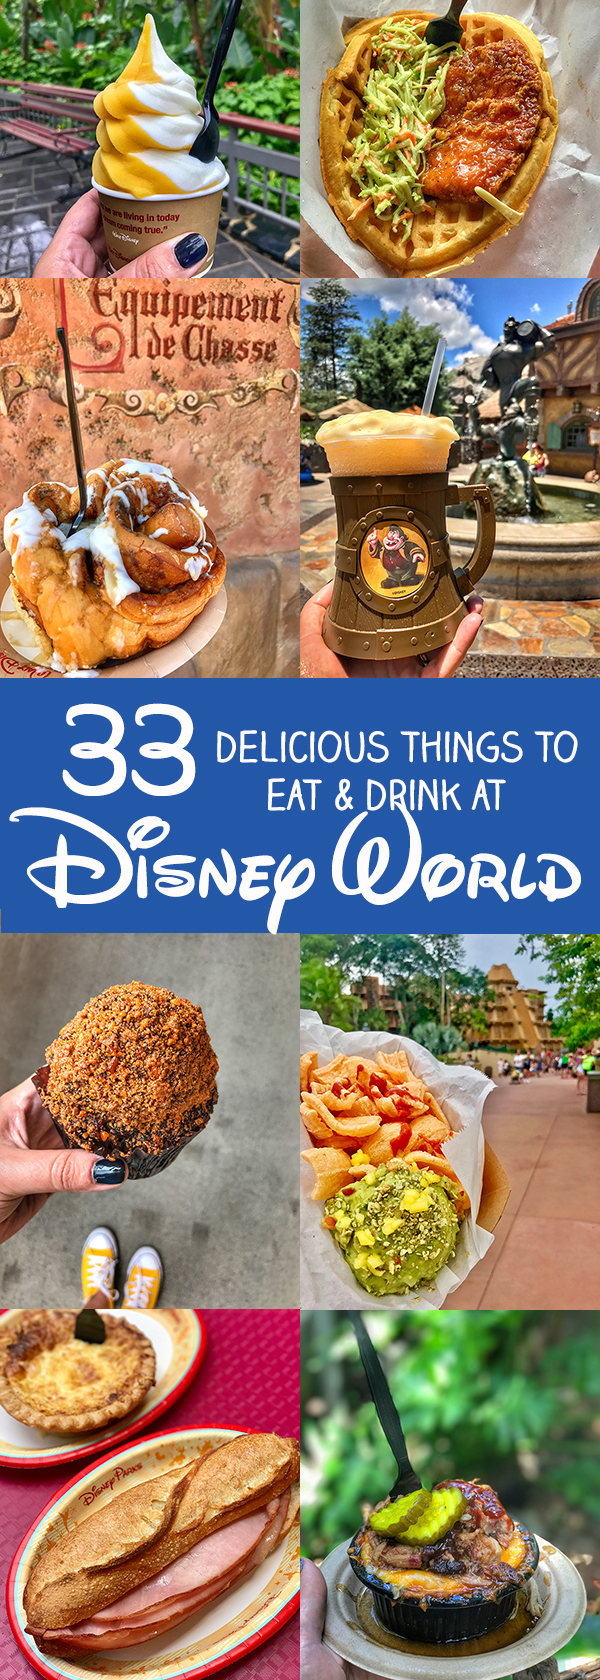 33 Delicious Things to Eat and Drink and Walt Disney World - What to Eat at Walt Disney World